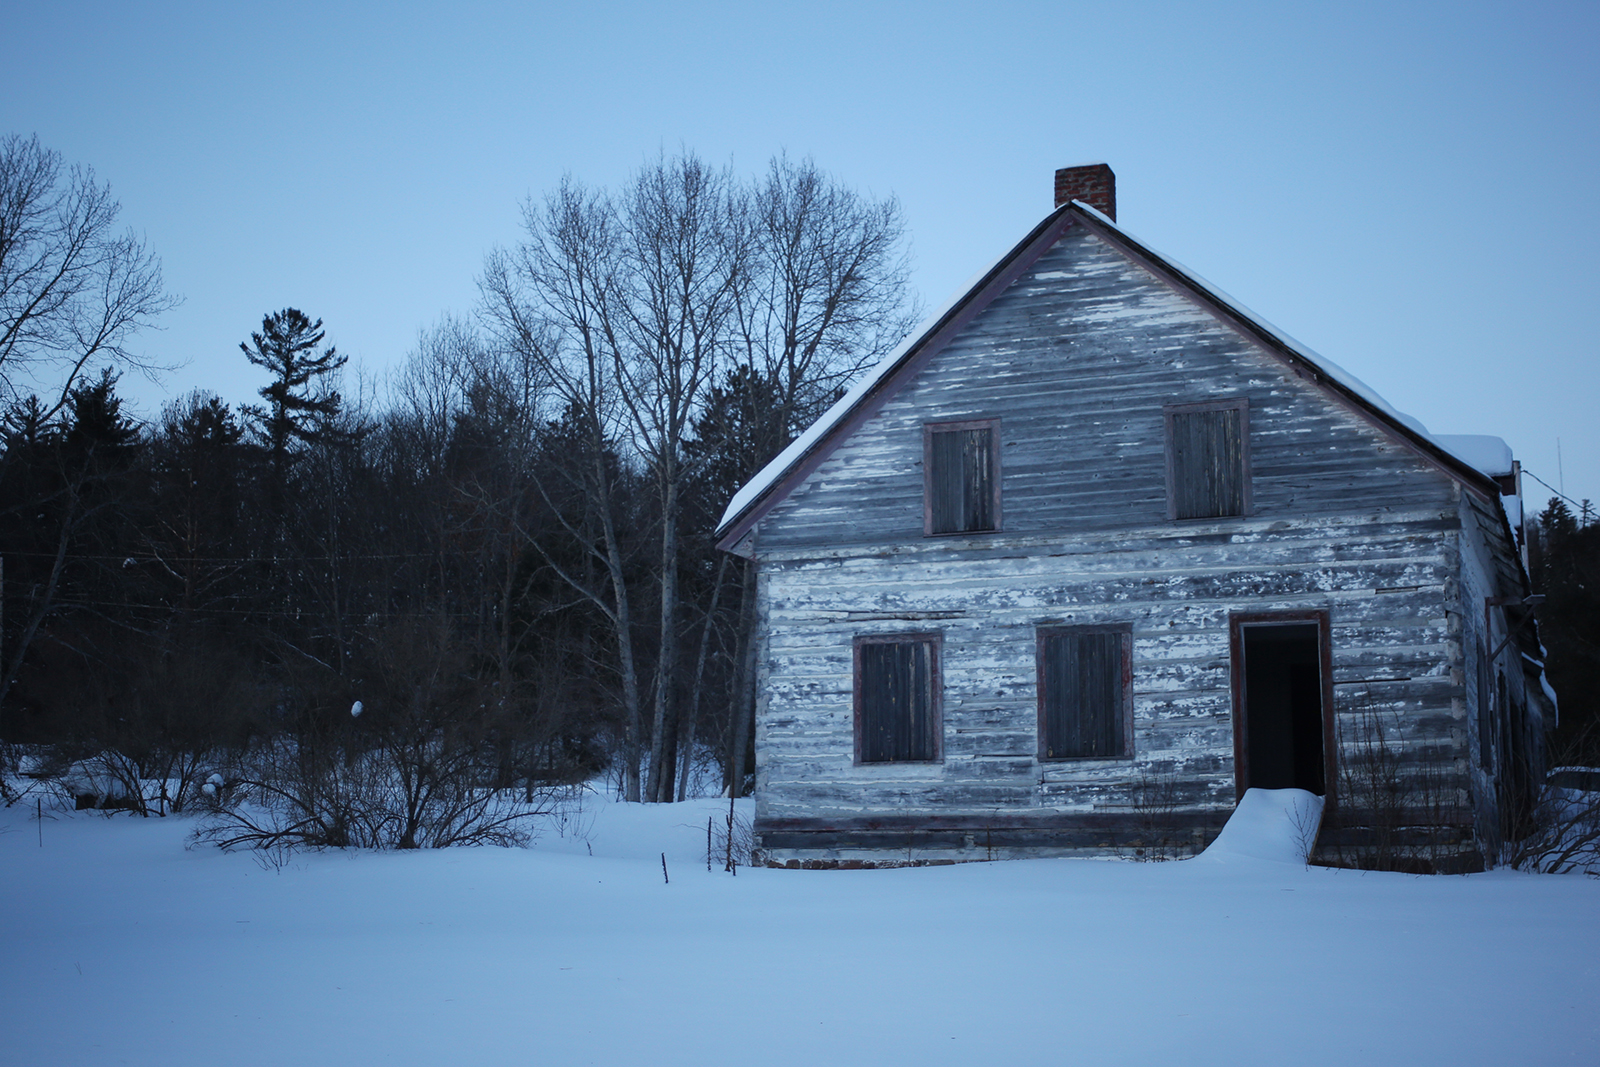 A weathered, abandoned building stands surrounded by deep snow and forest at dusk